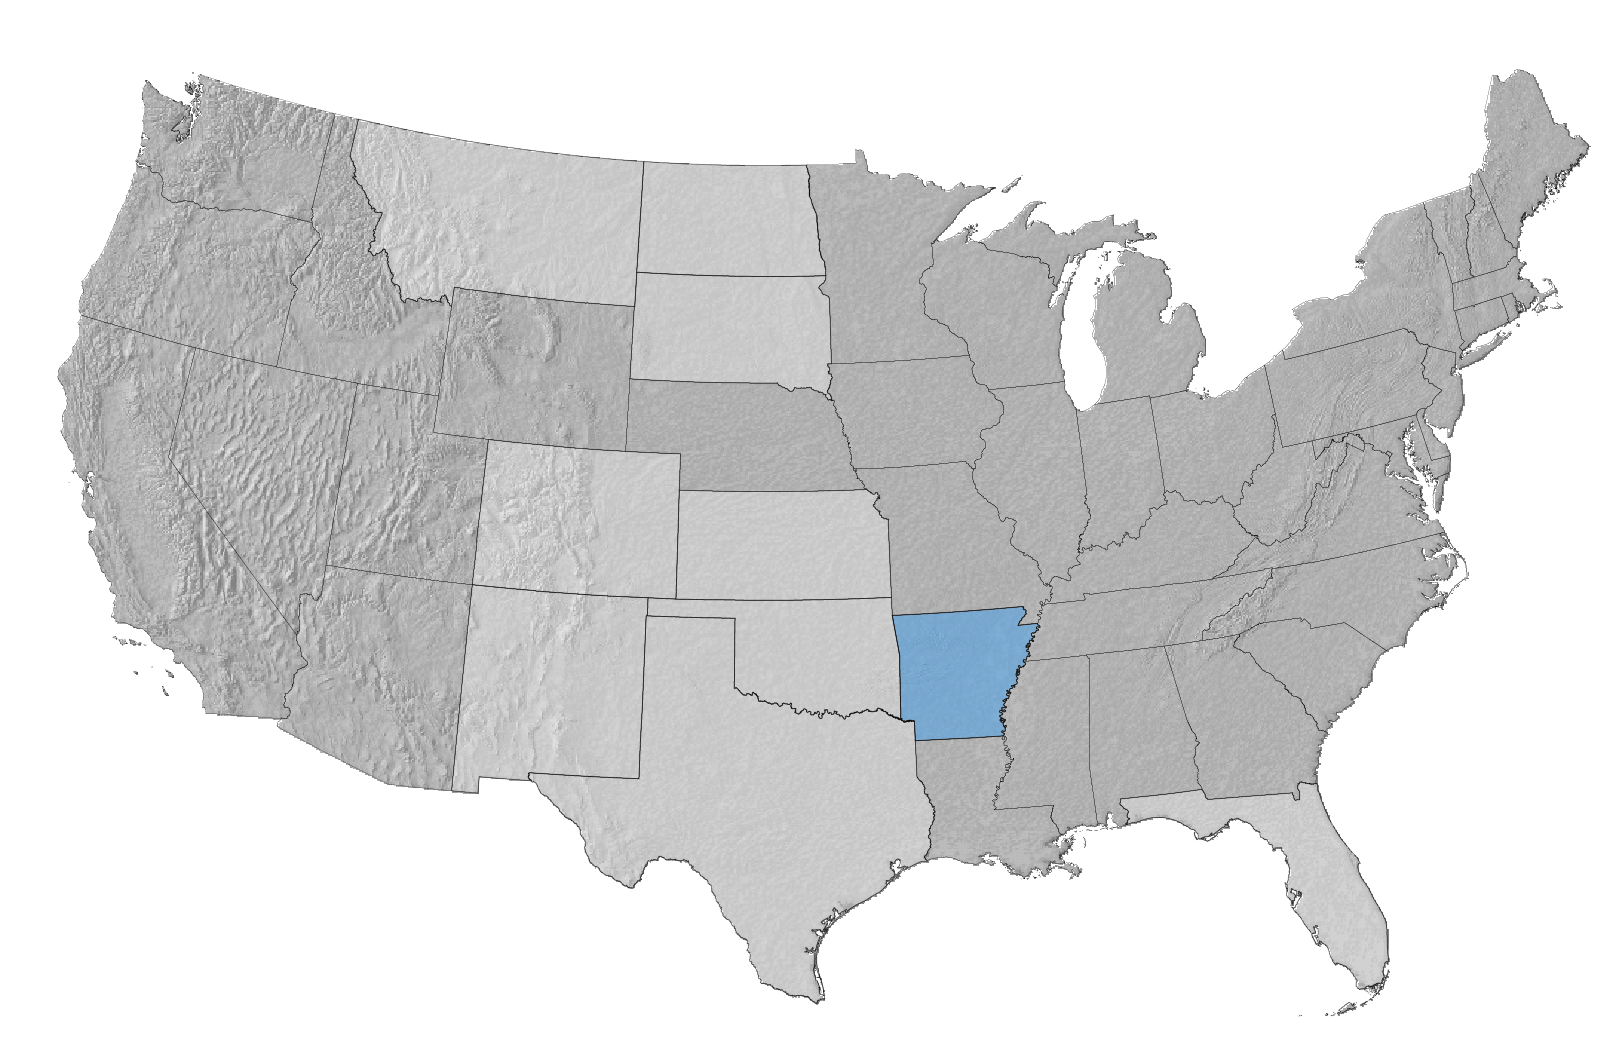 USA Map with Arkansas Highlighted